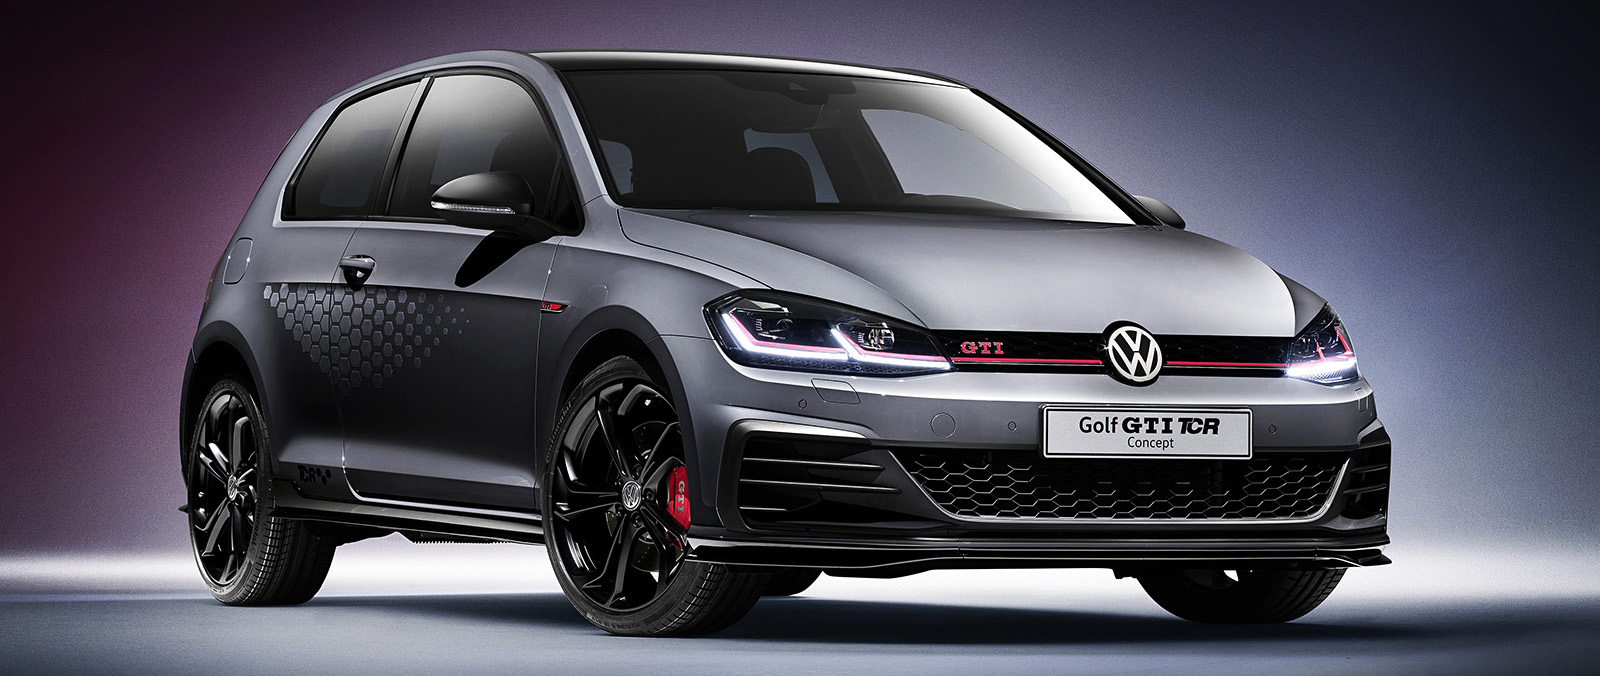 Volkswagen presenteert de Golf GTI TCR